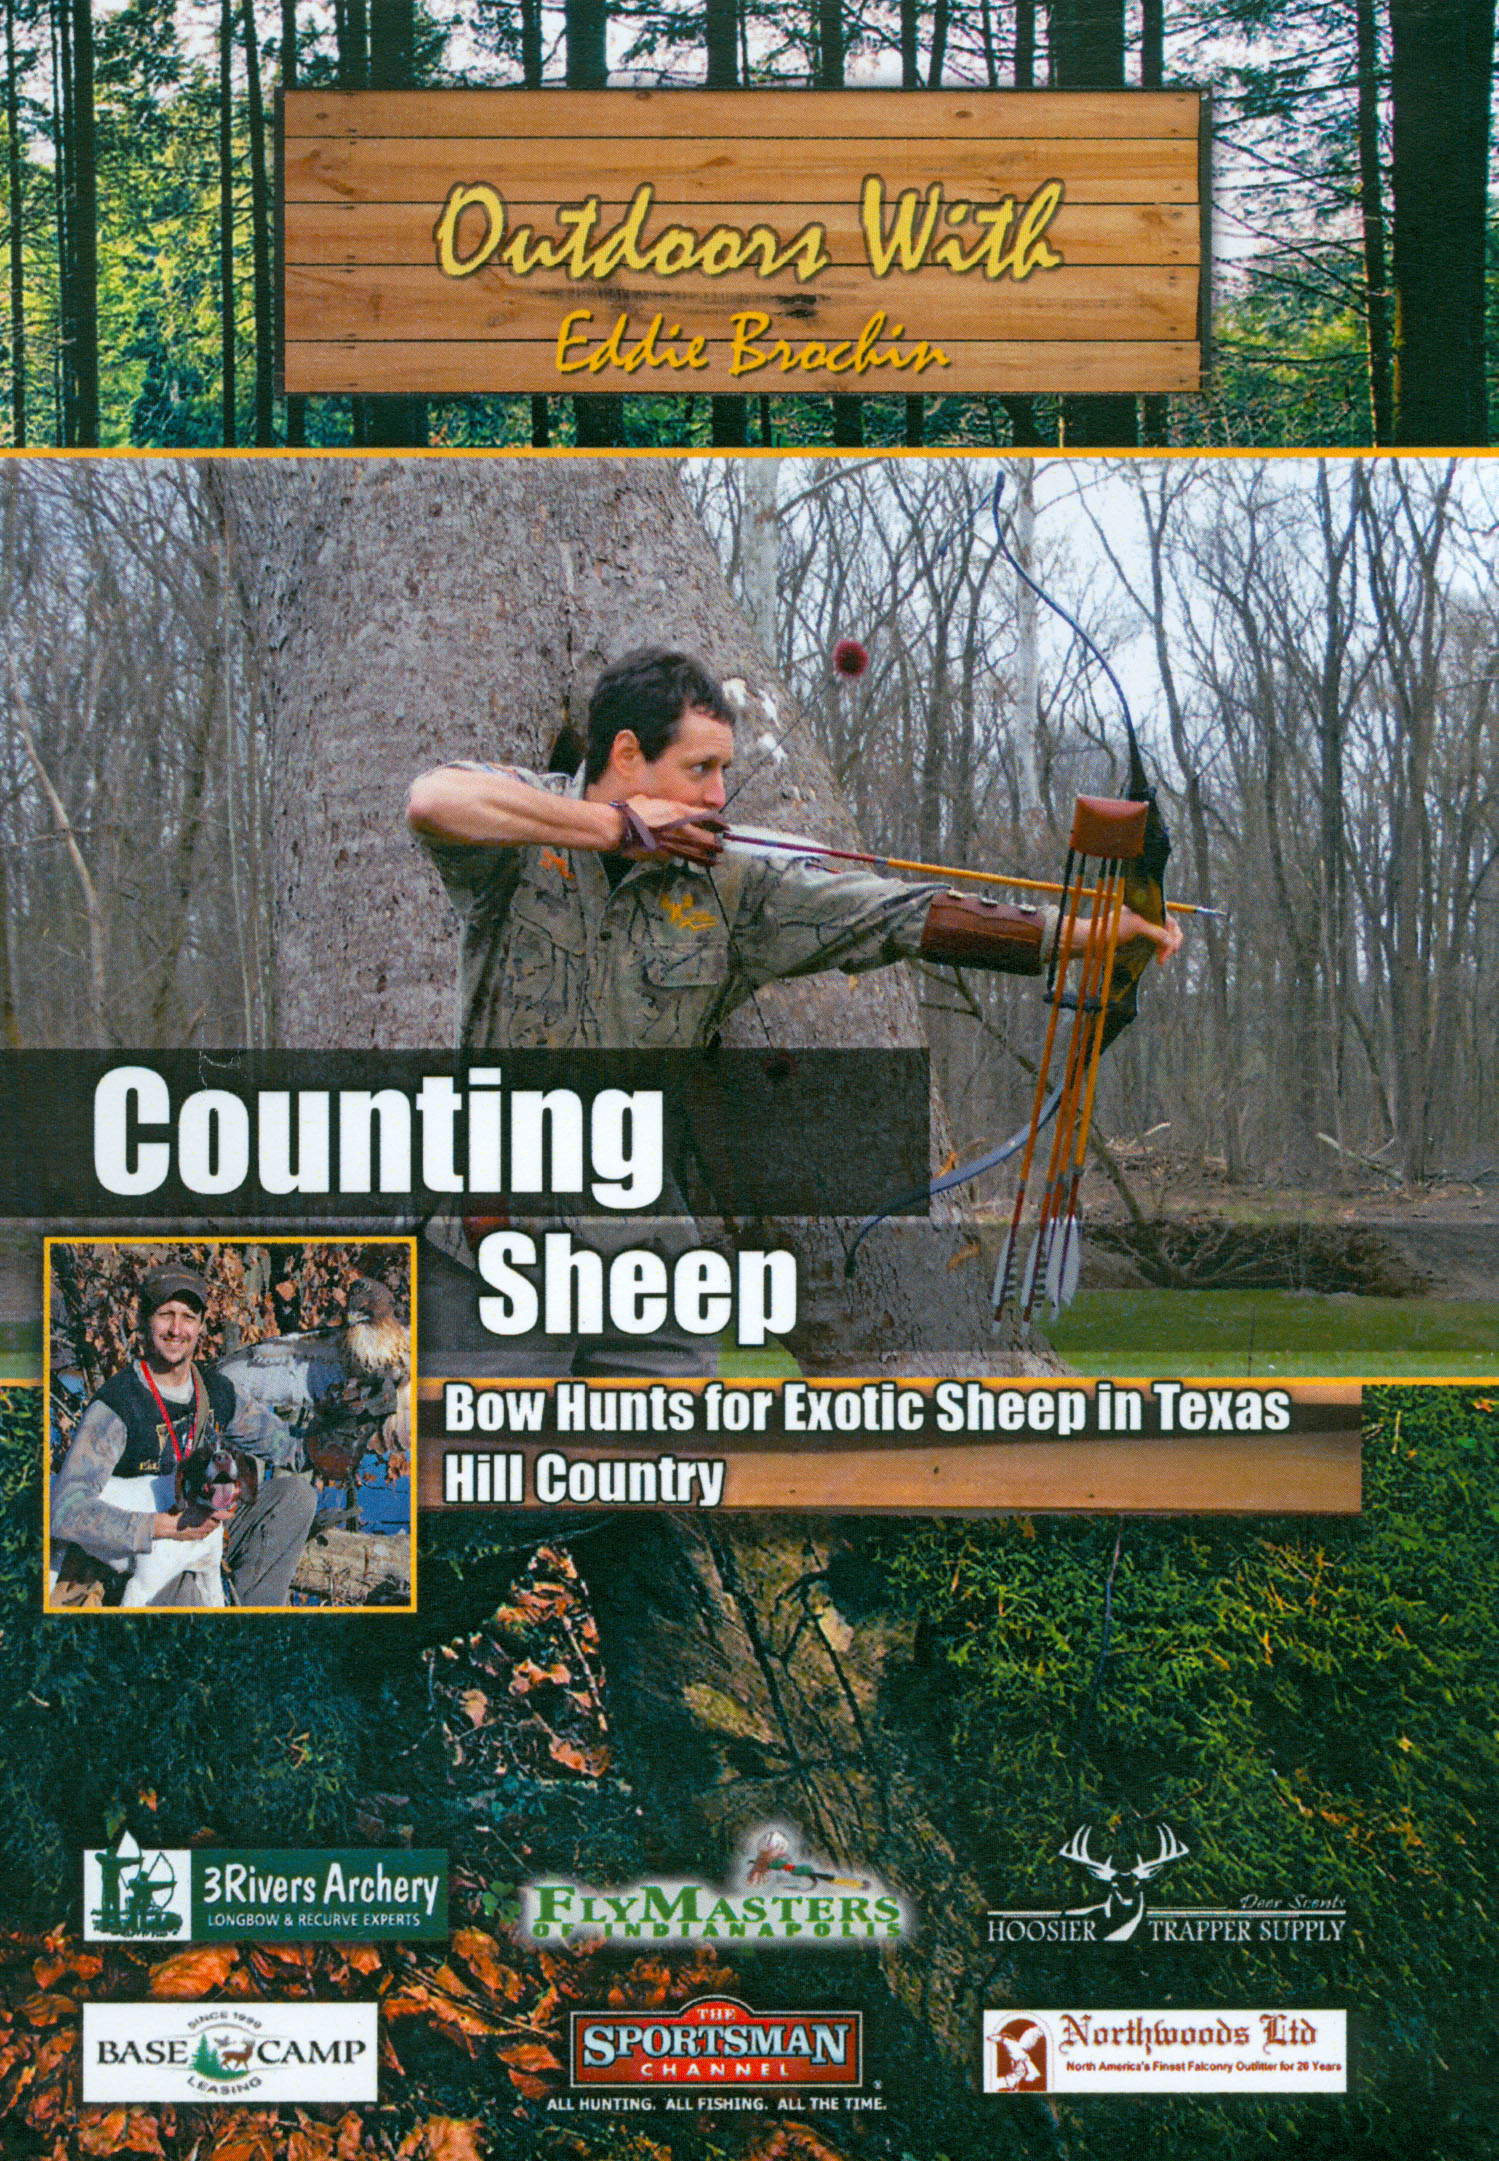 Outdoors With Eddie Brochin: Counting Sheep